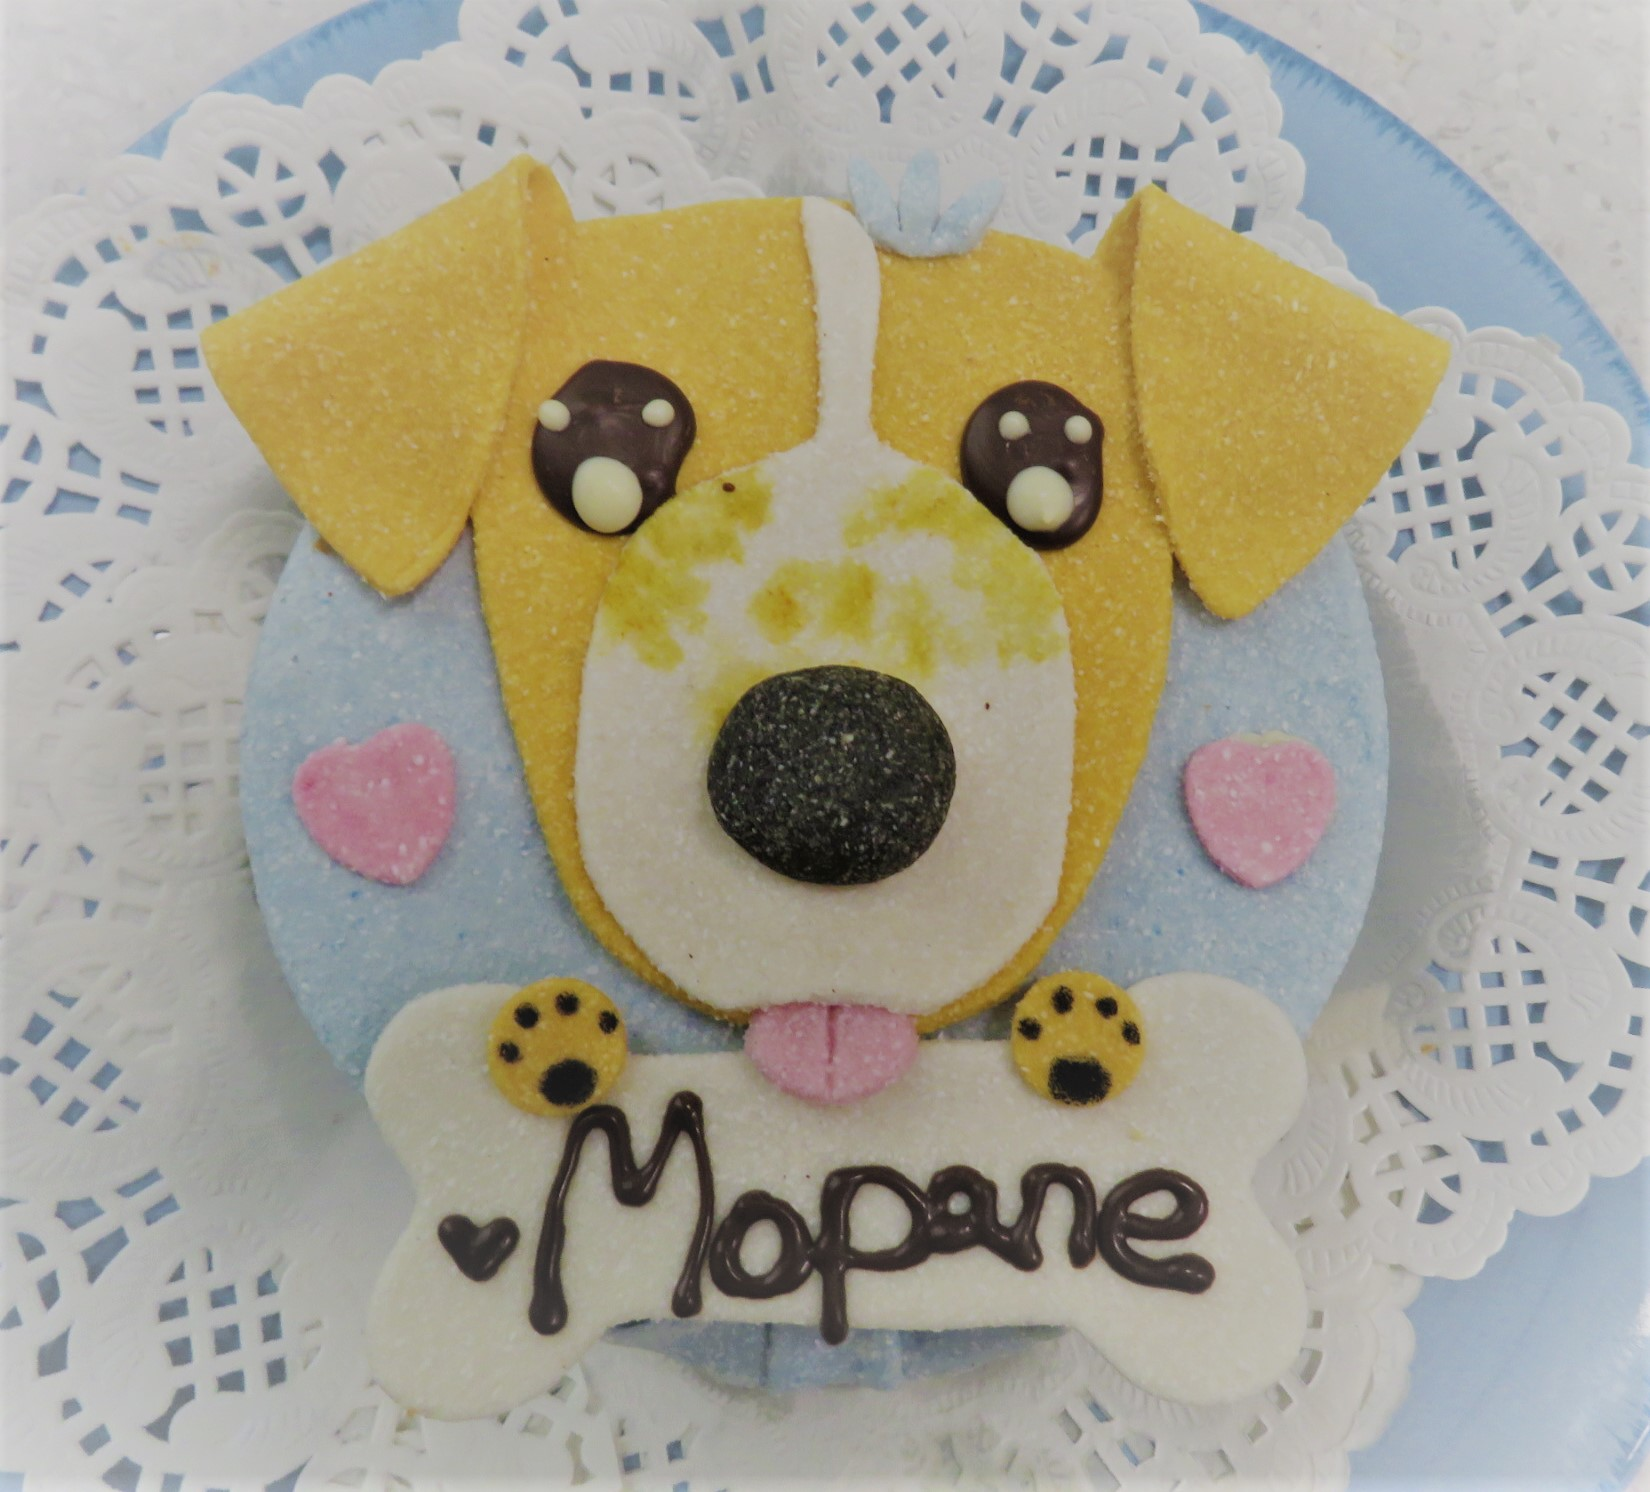 Edible cake topper for the cake to celebrate Mopane's 15th blood donation